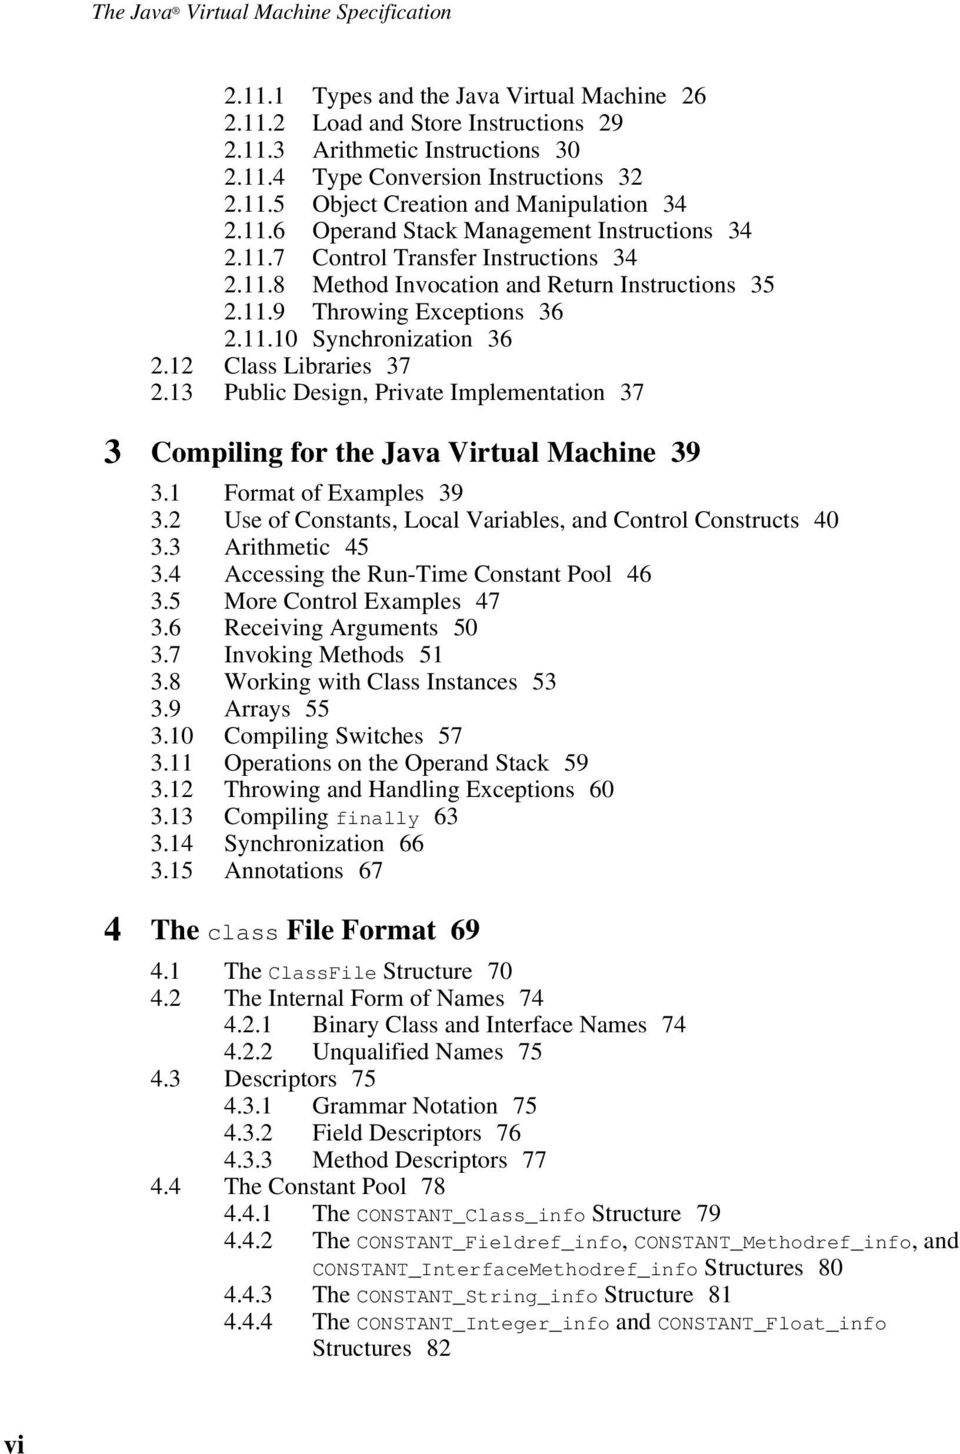 12 Class Libraries 37 2.13 Public Design, Private Implementation 37 3 Compiling for the Java Virtual Machine 39 3.1 Format of Examples 39 3.